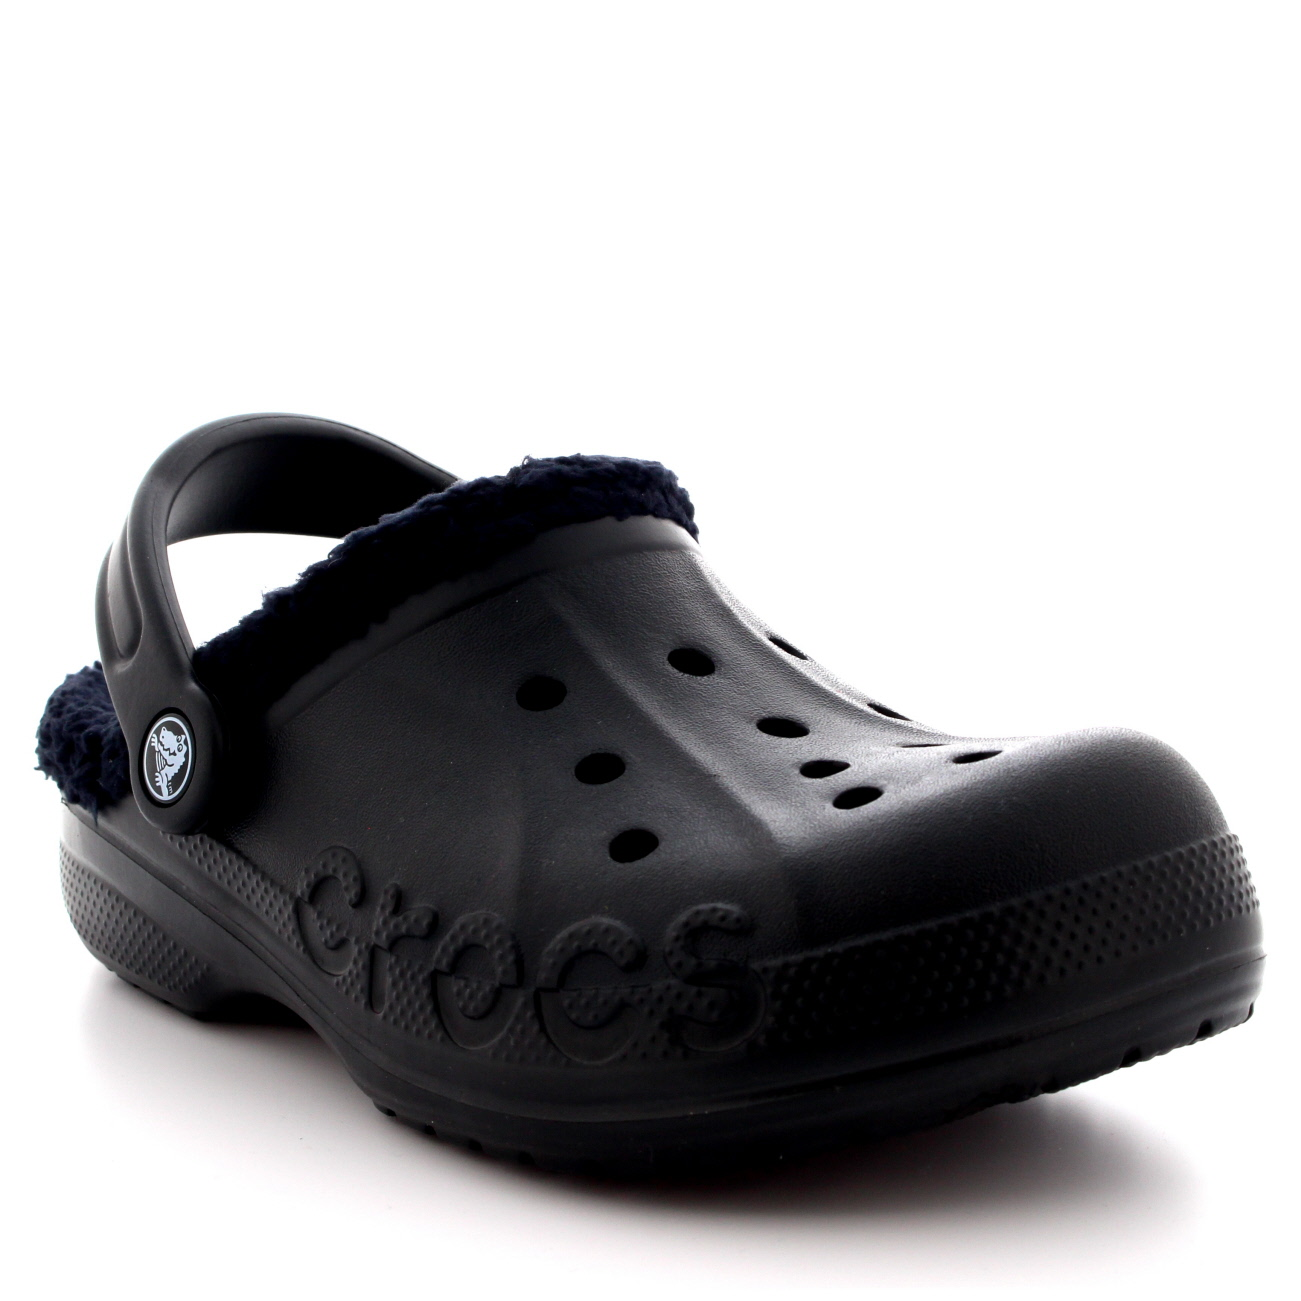 Unisex Adults Crocs Baya Lined